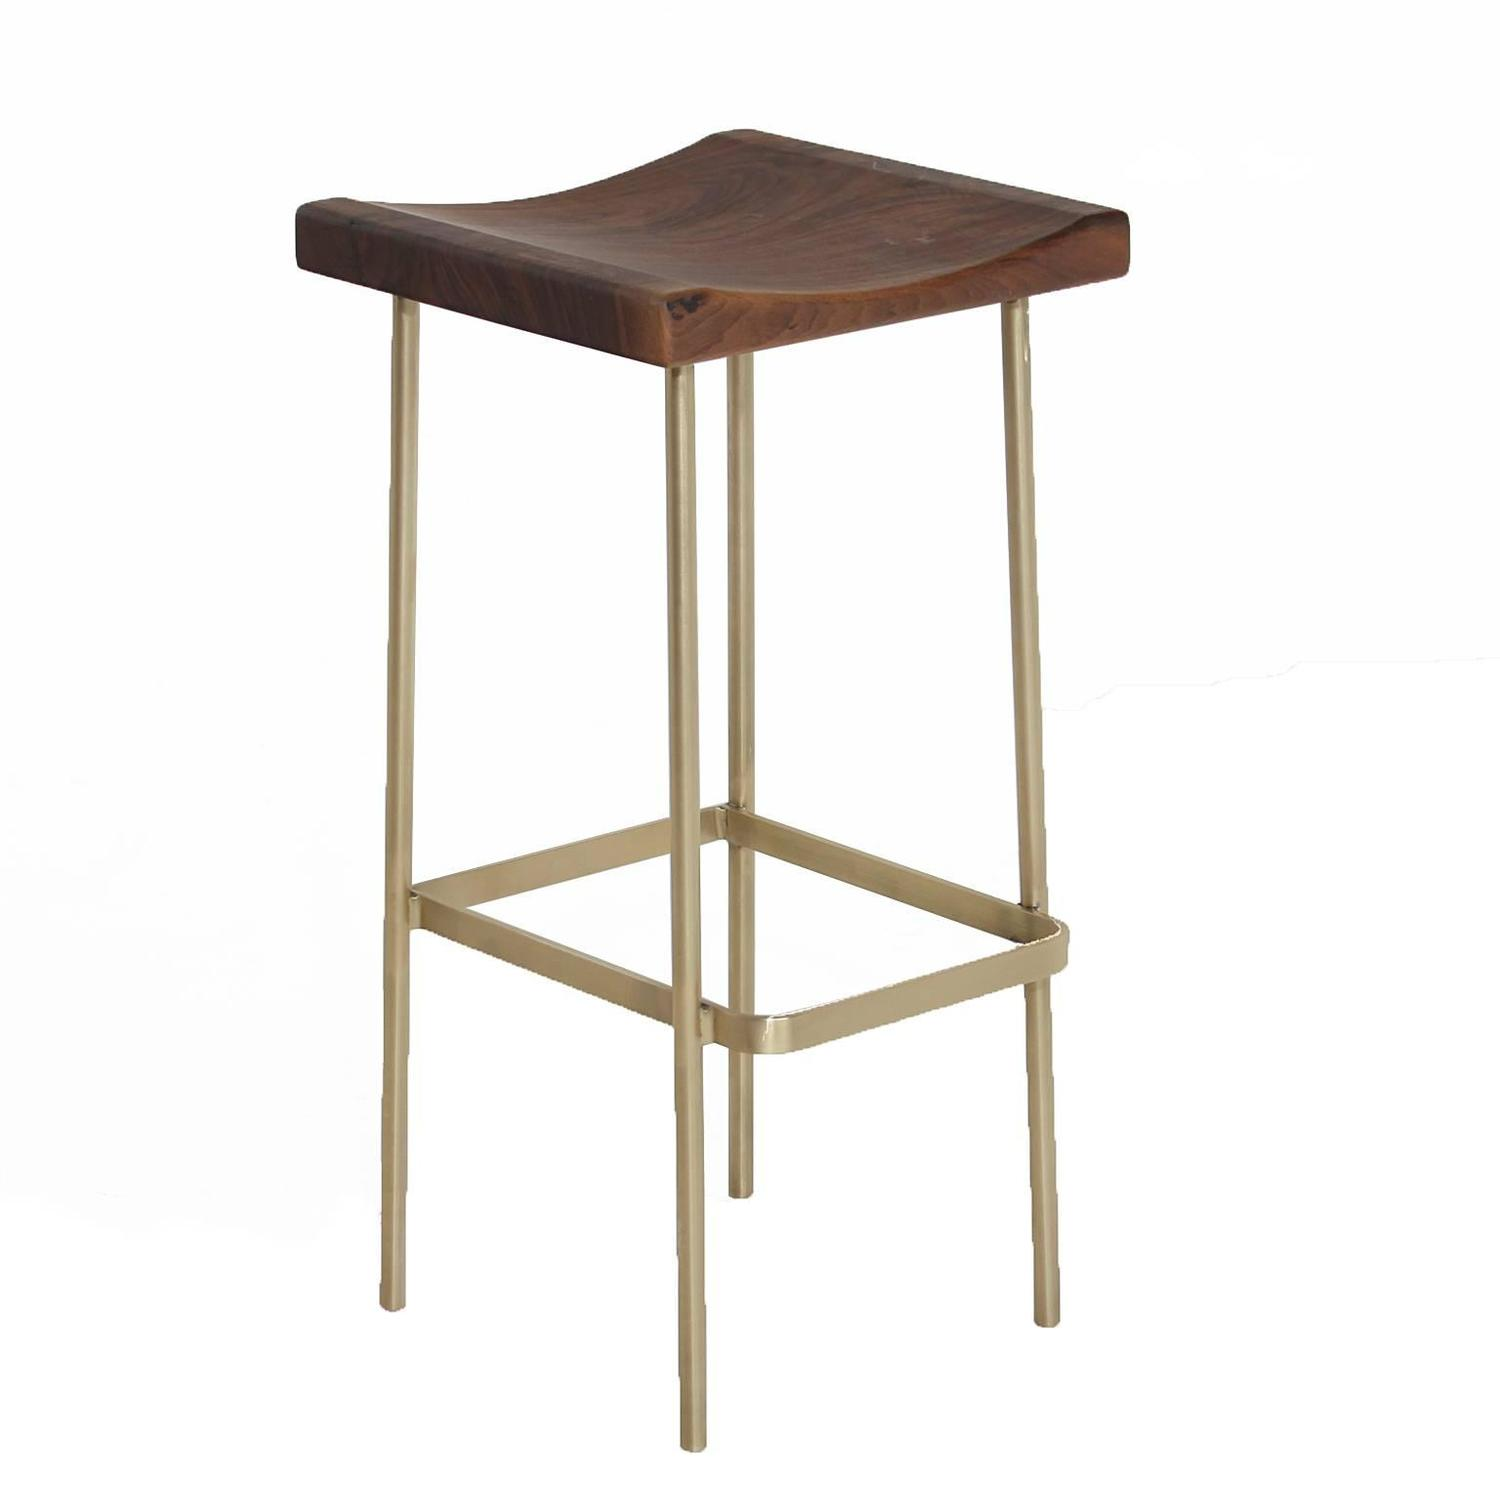 Bundinha Stool With Brass Base By Thomas Hayes Studio For